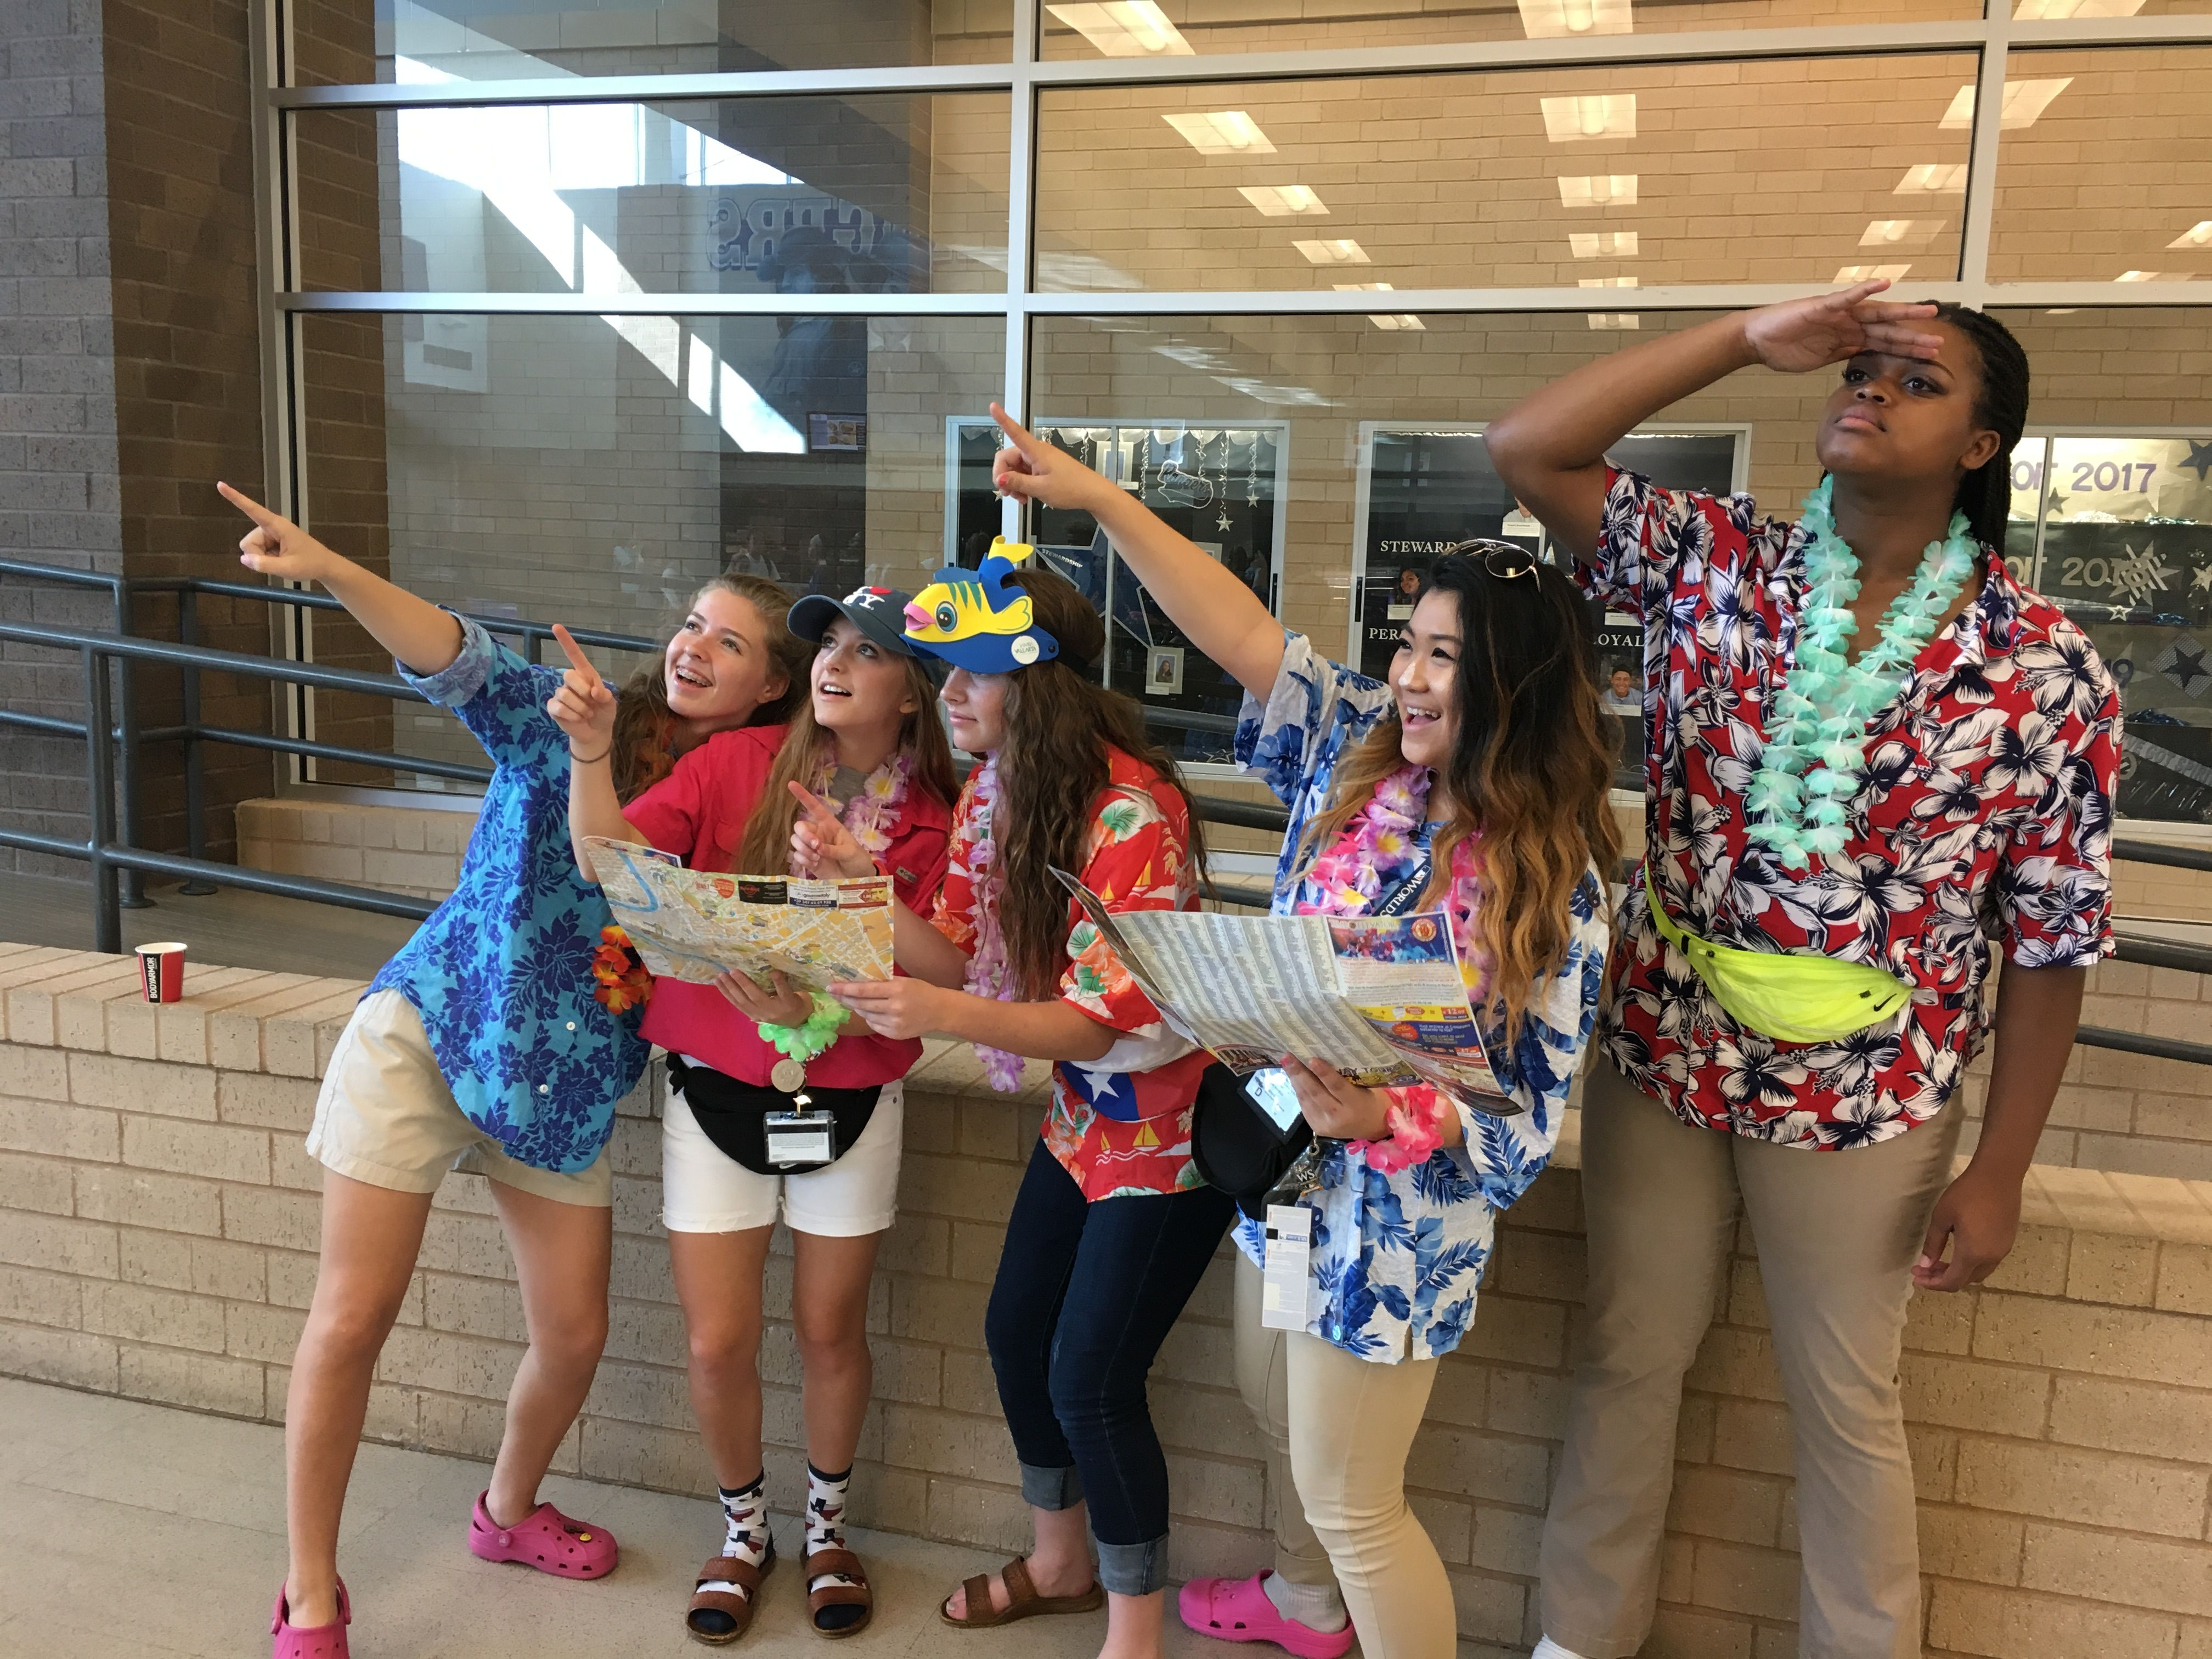 tacky tourists spirit day | prom/hoco in 2019 | Tacky ...